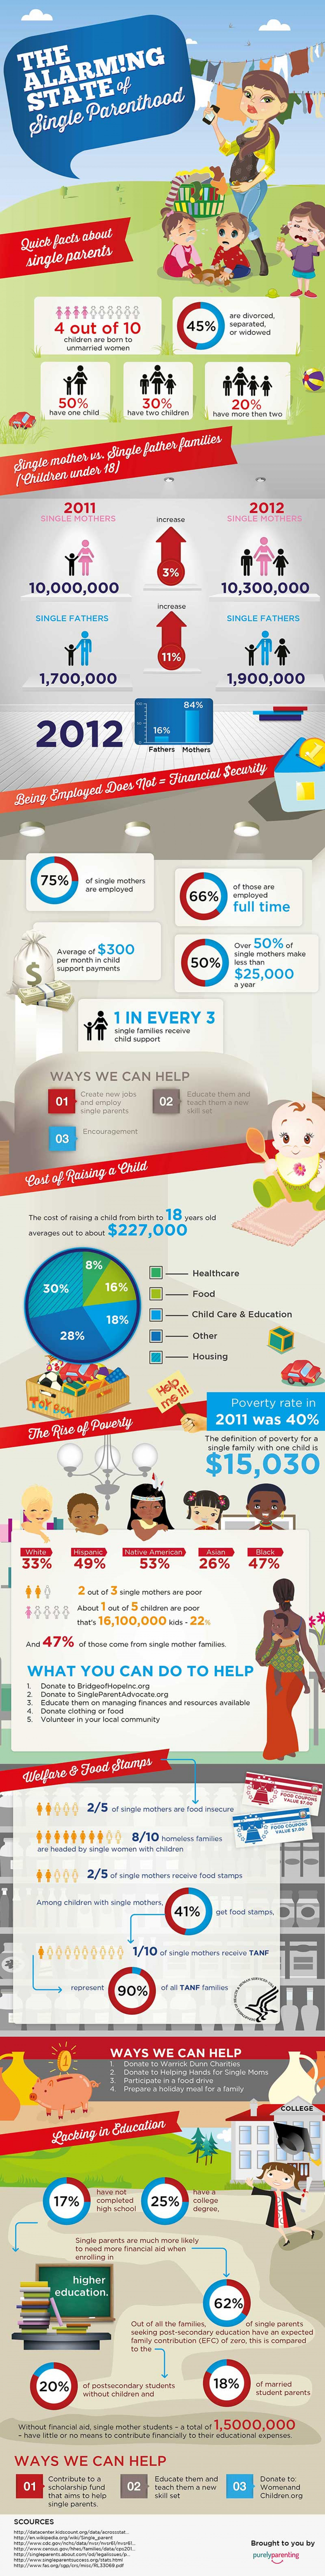 Single Parenting Poverty Infographic